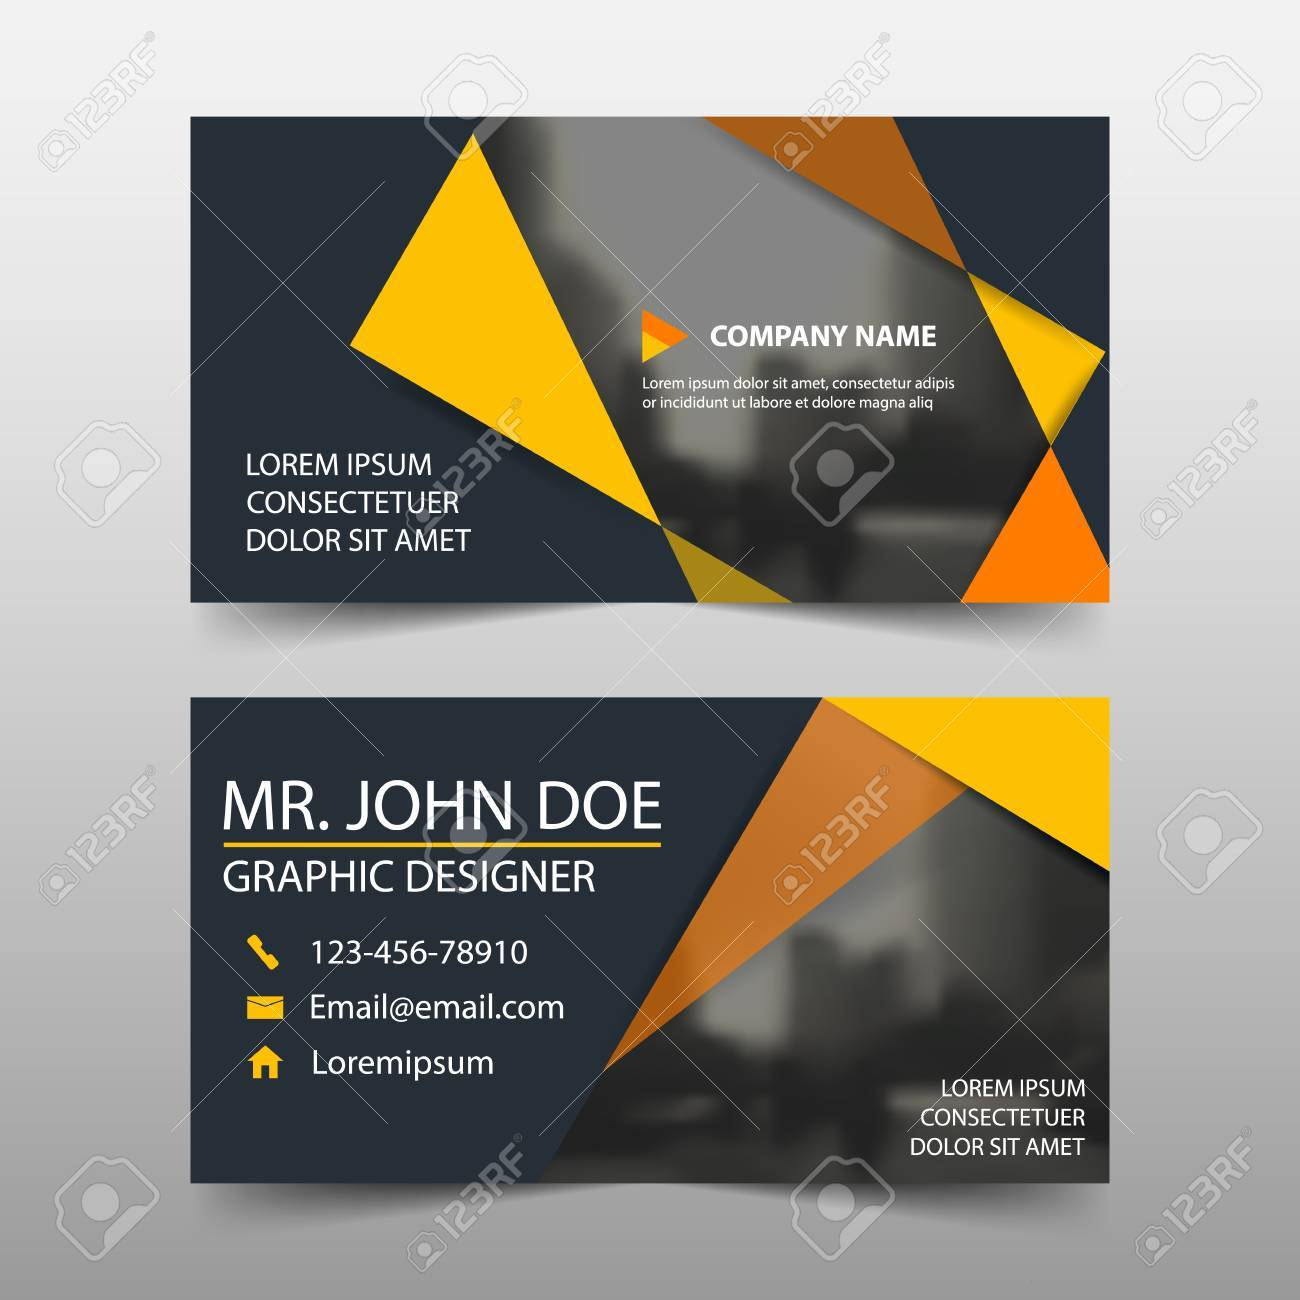 Beautiful who makes business cards photos business card ideas pressure washing business card templates images templates alramifo Images